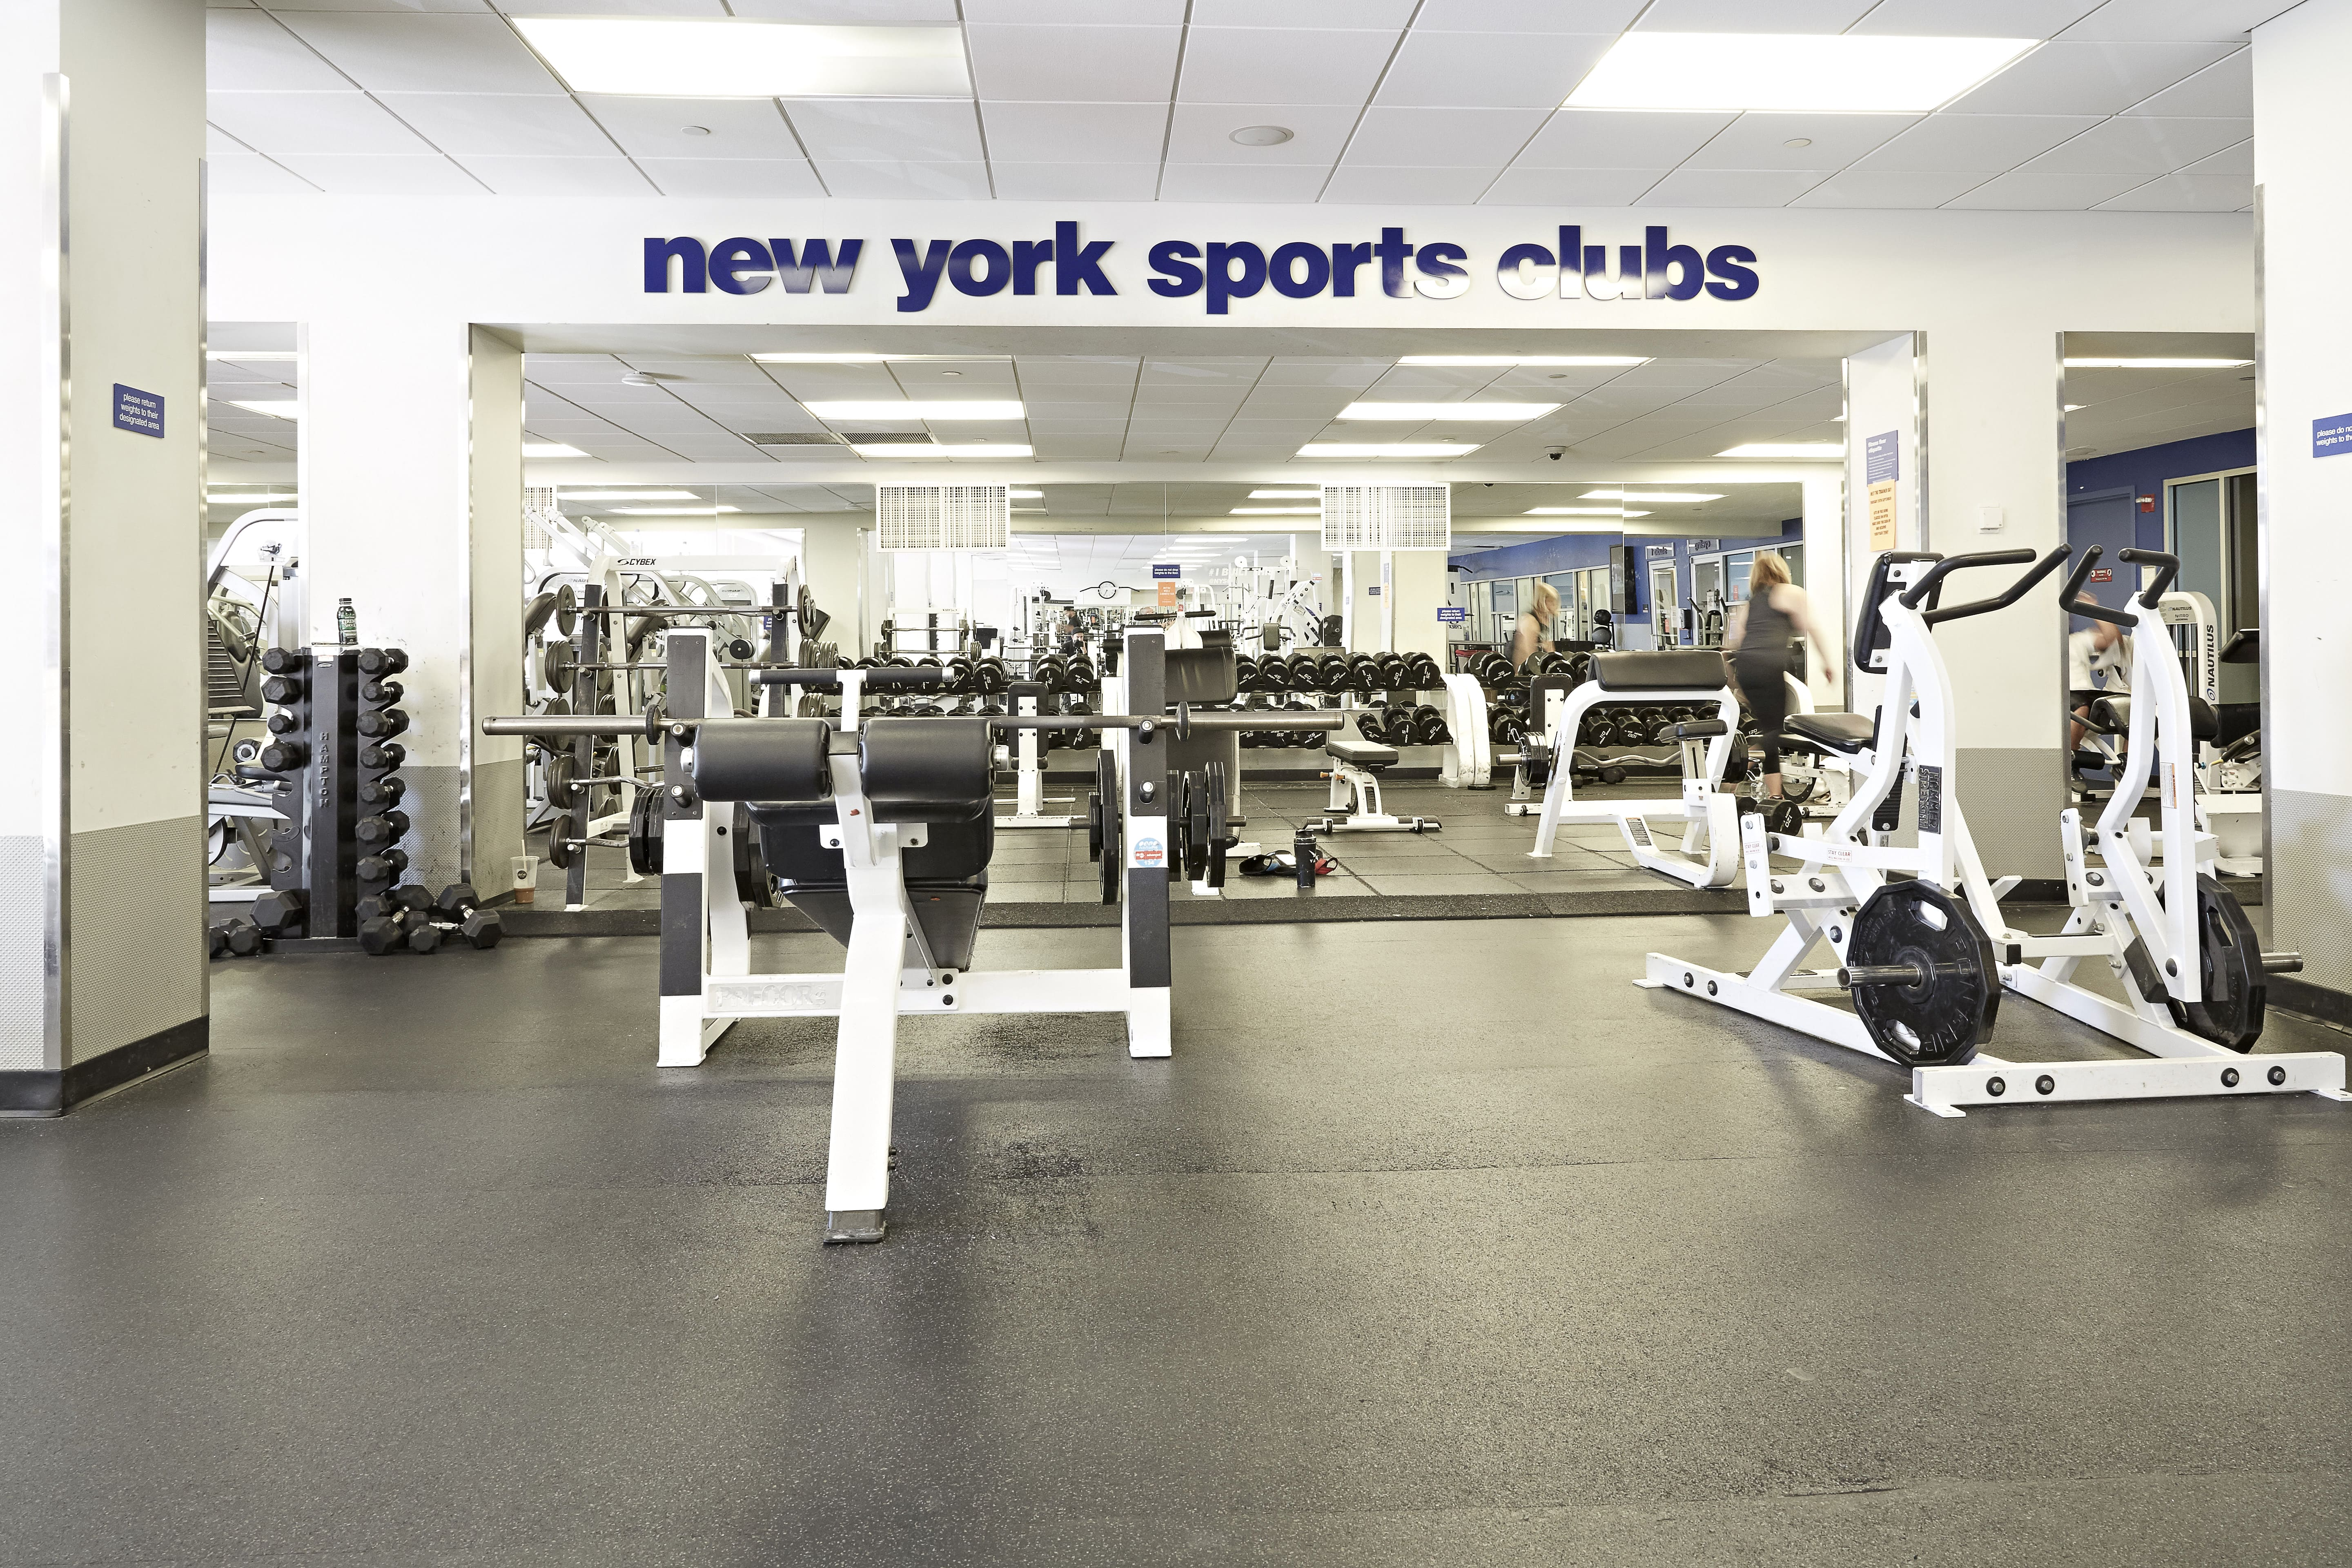 New York Sports Clubs image 12